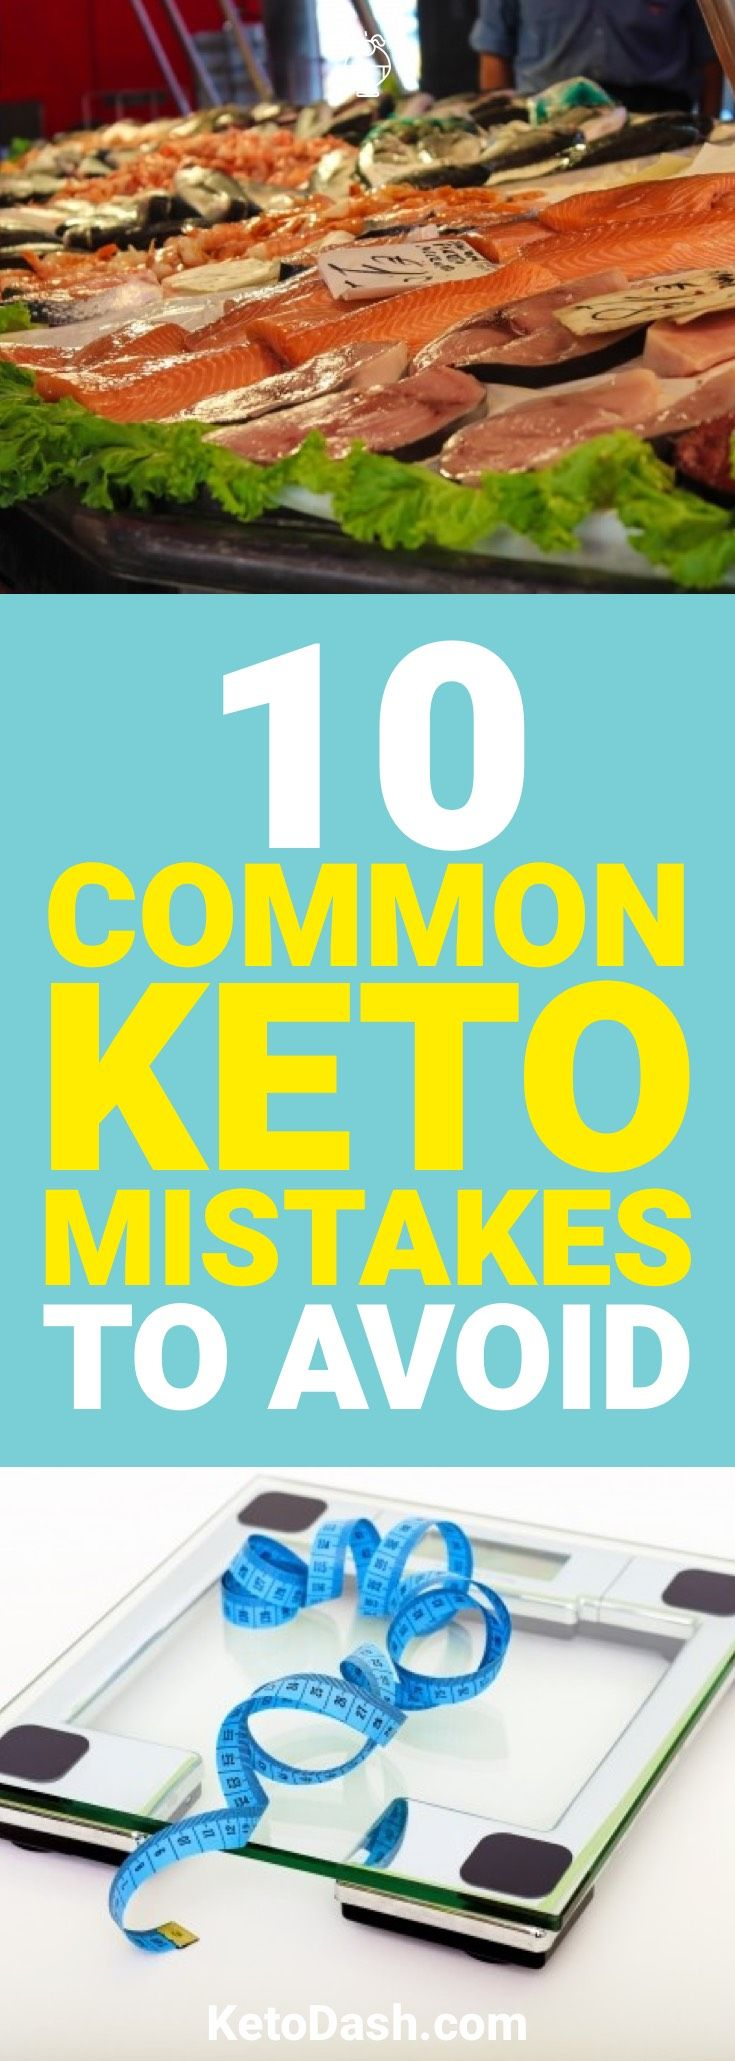 Doing keto? Here are some common keto mistakes and how you can avoid them when starting the ketogenic diet so you can lose weight fast.